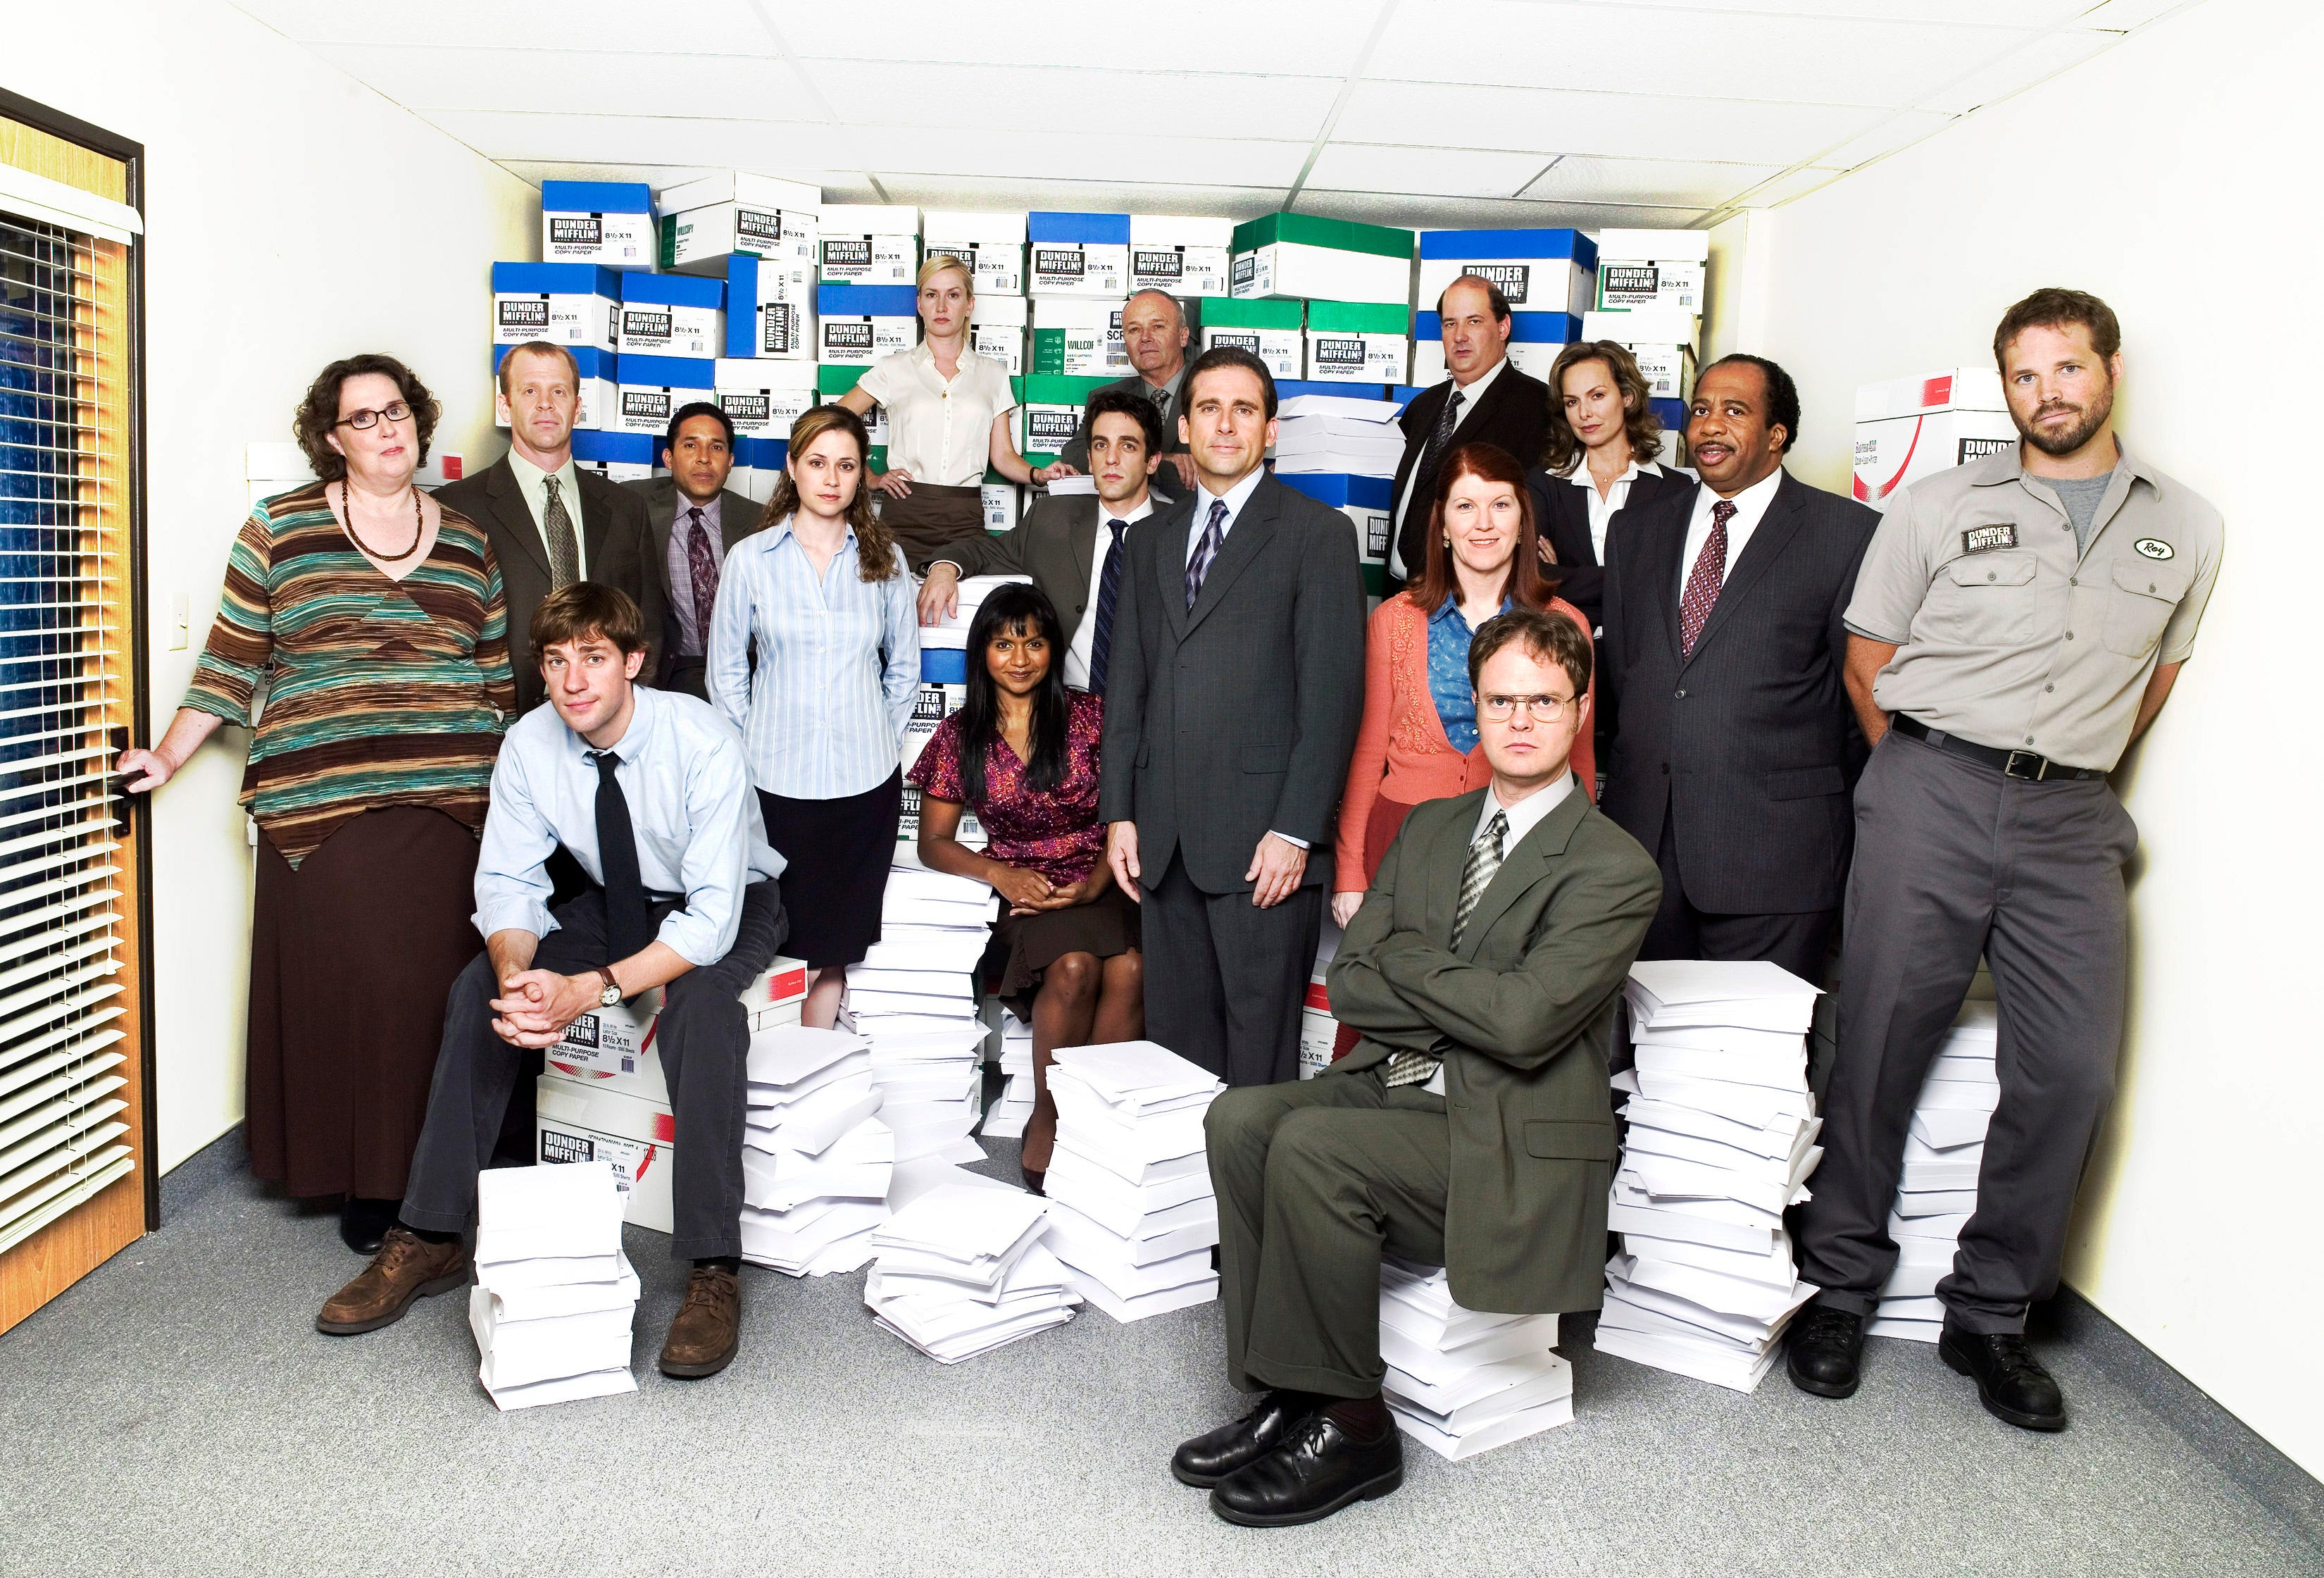 The Office' 15th anniversary: How it changed pop culture